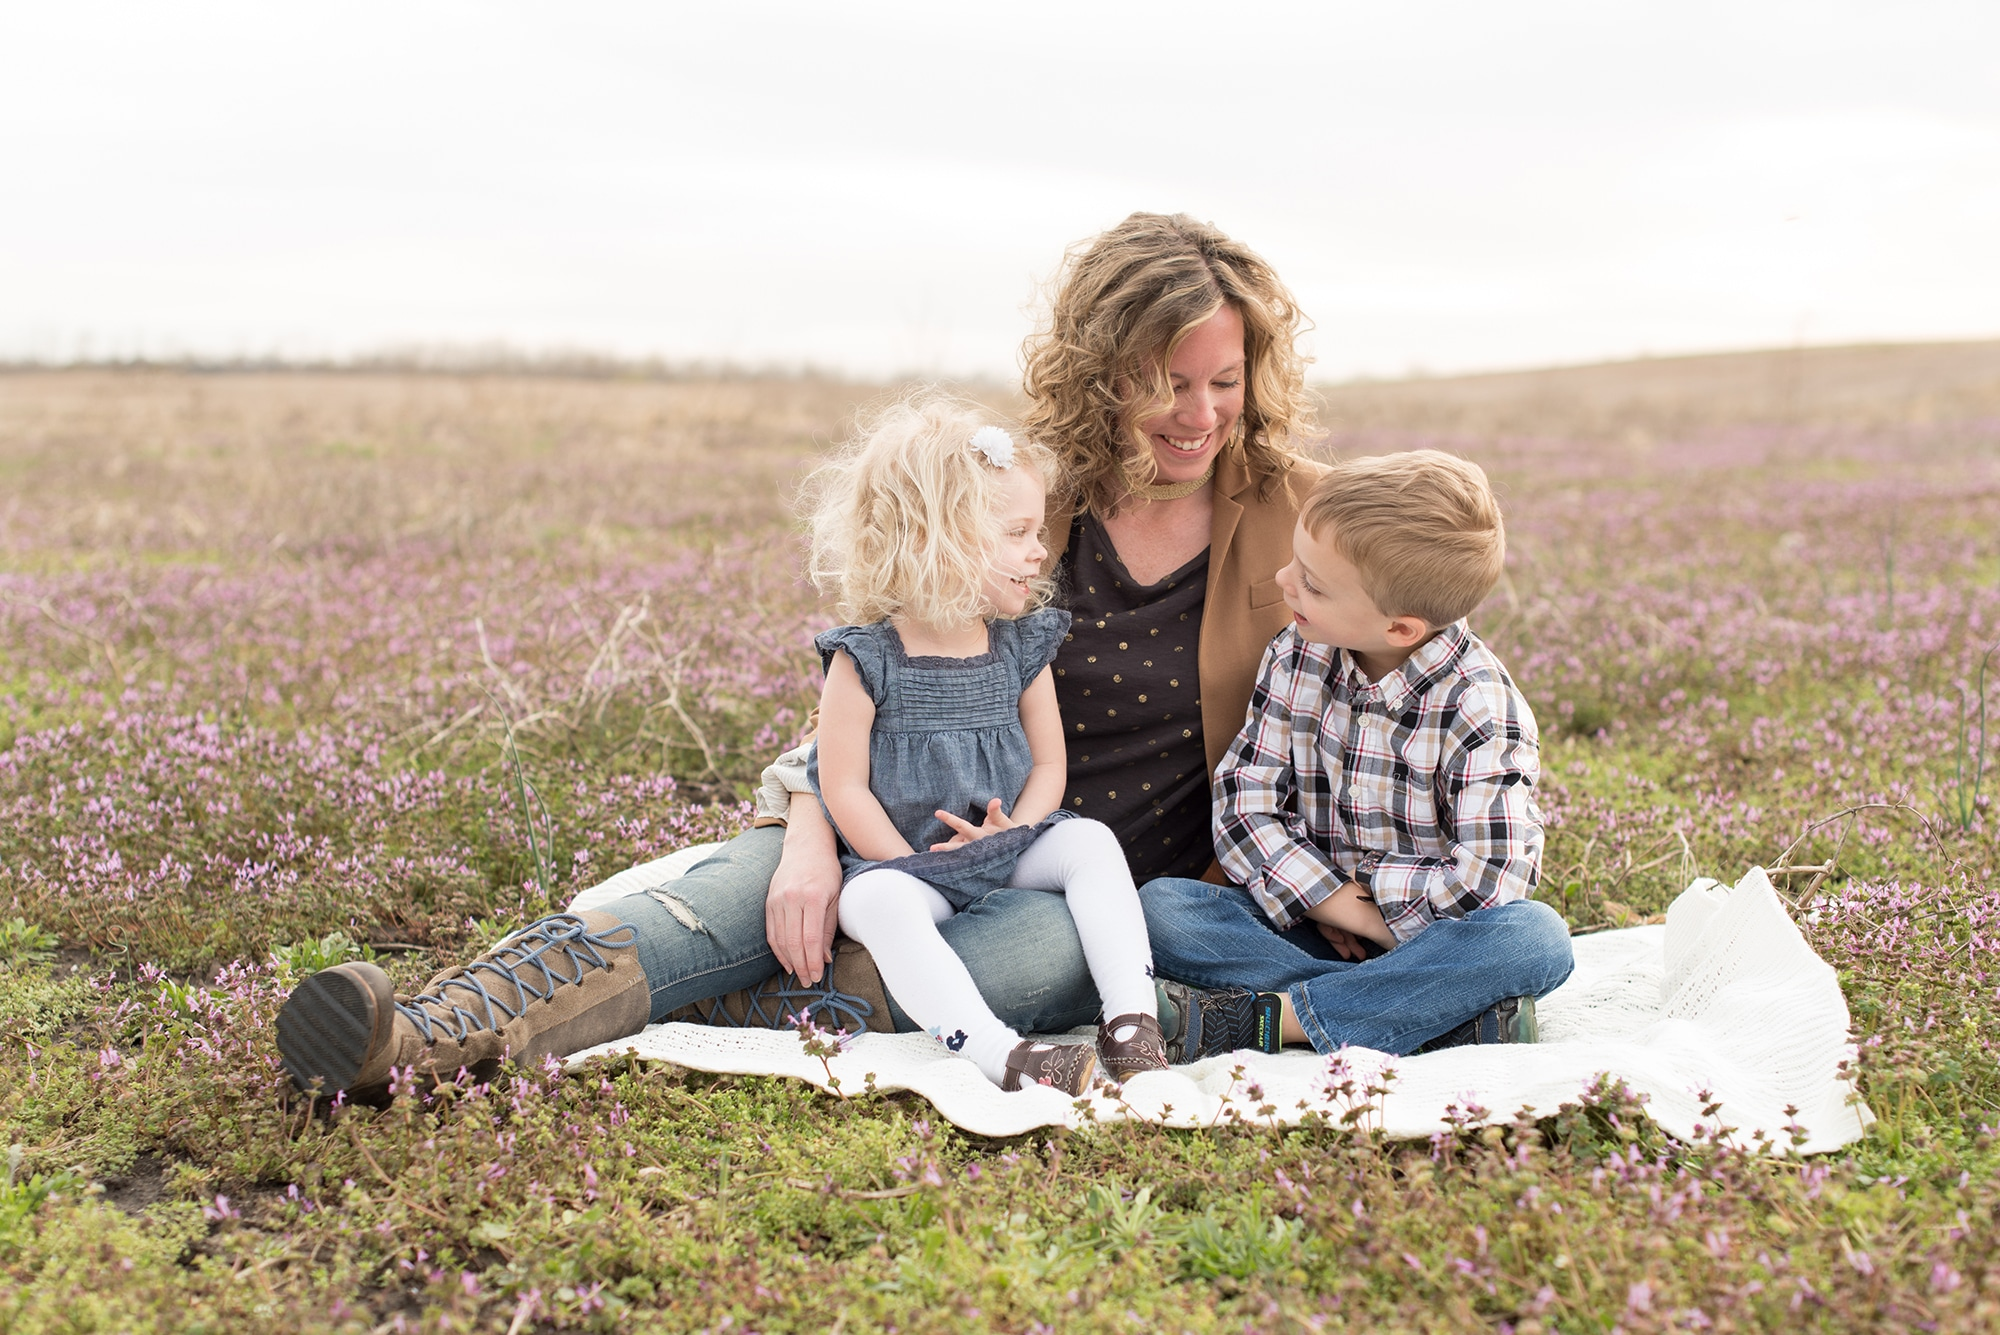 Luminant Photography | Lafayette, Indiana Photographer | Lafayette, Indiana Family Photographer | Family Photos | Family Pictures | Victoria Rayburn | Child Photographer